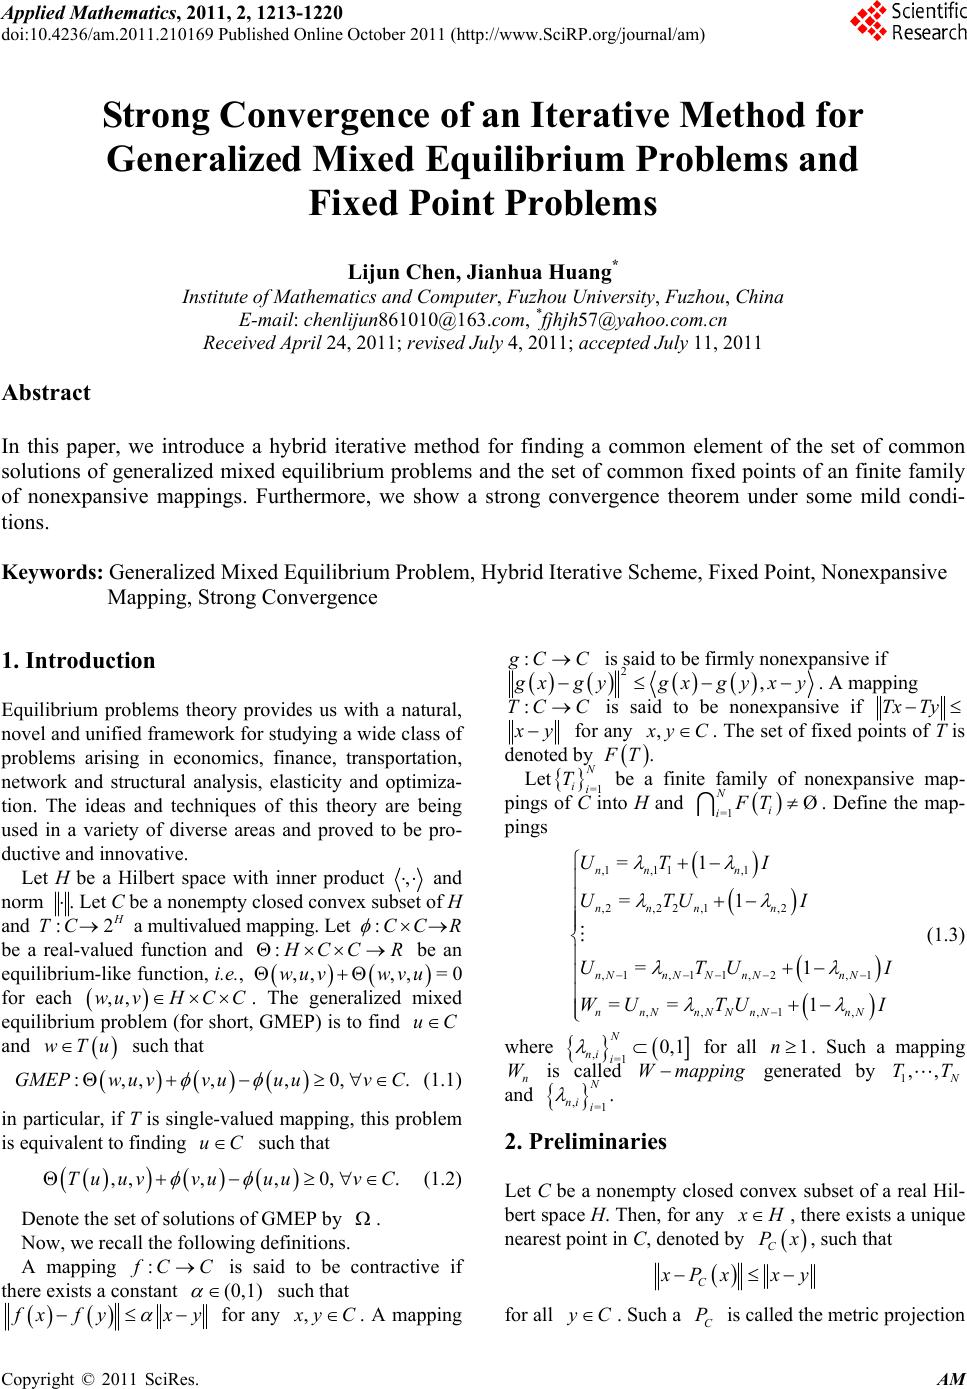 Strong Convergence of an Iterative Method for Generalized